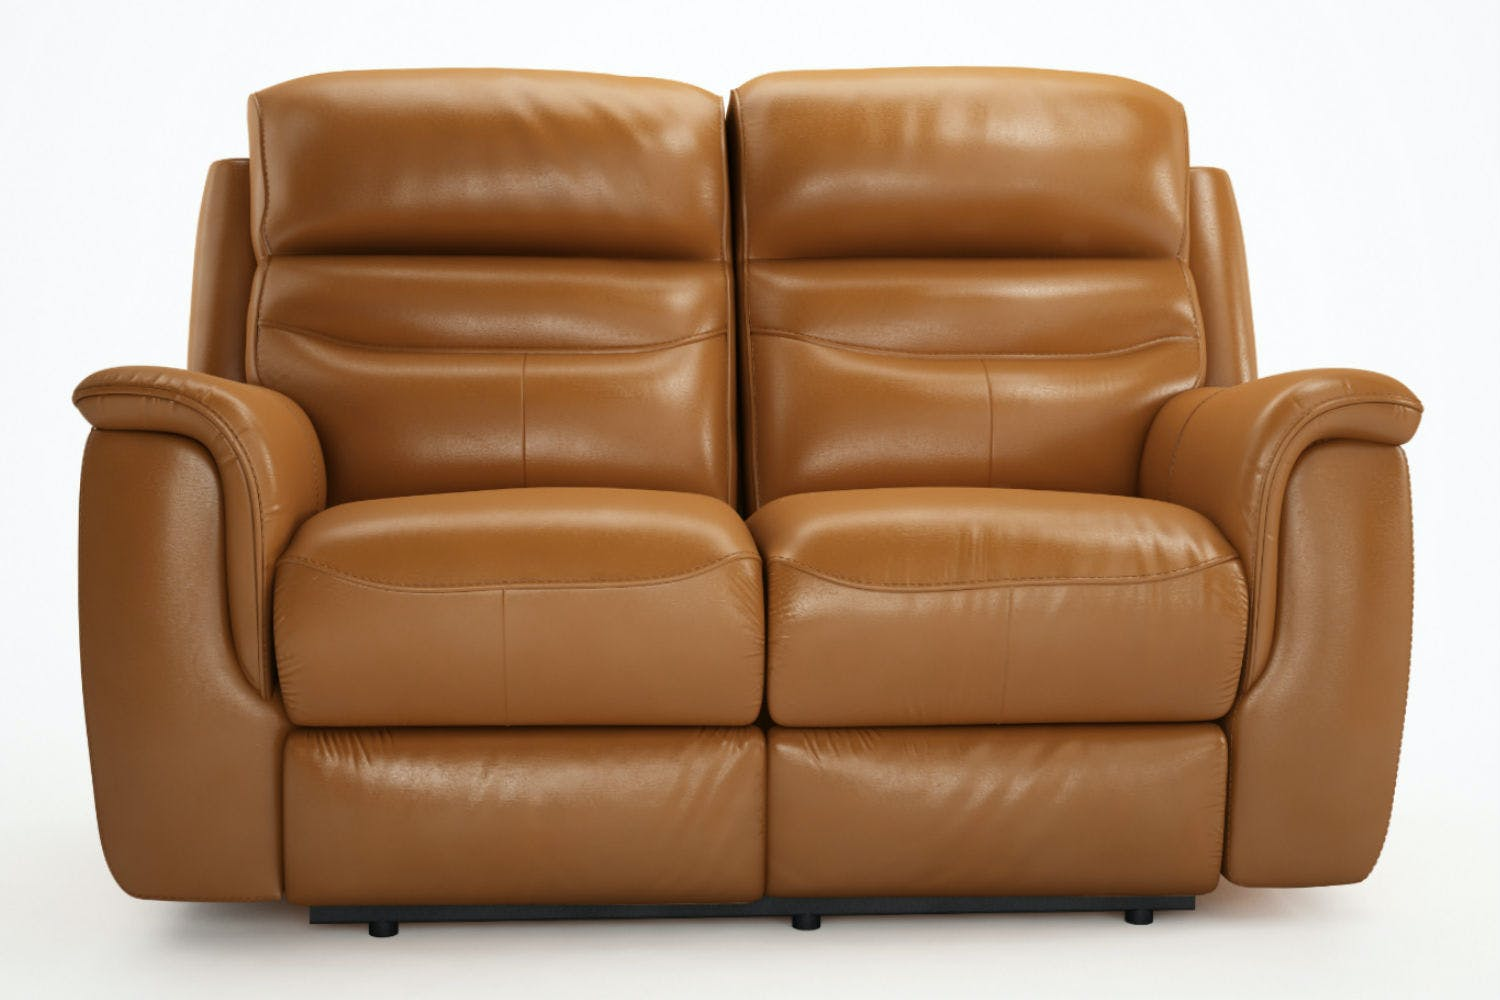 Bayle 2 Seater Leather Recliner Sofa Ireland